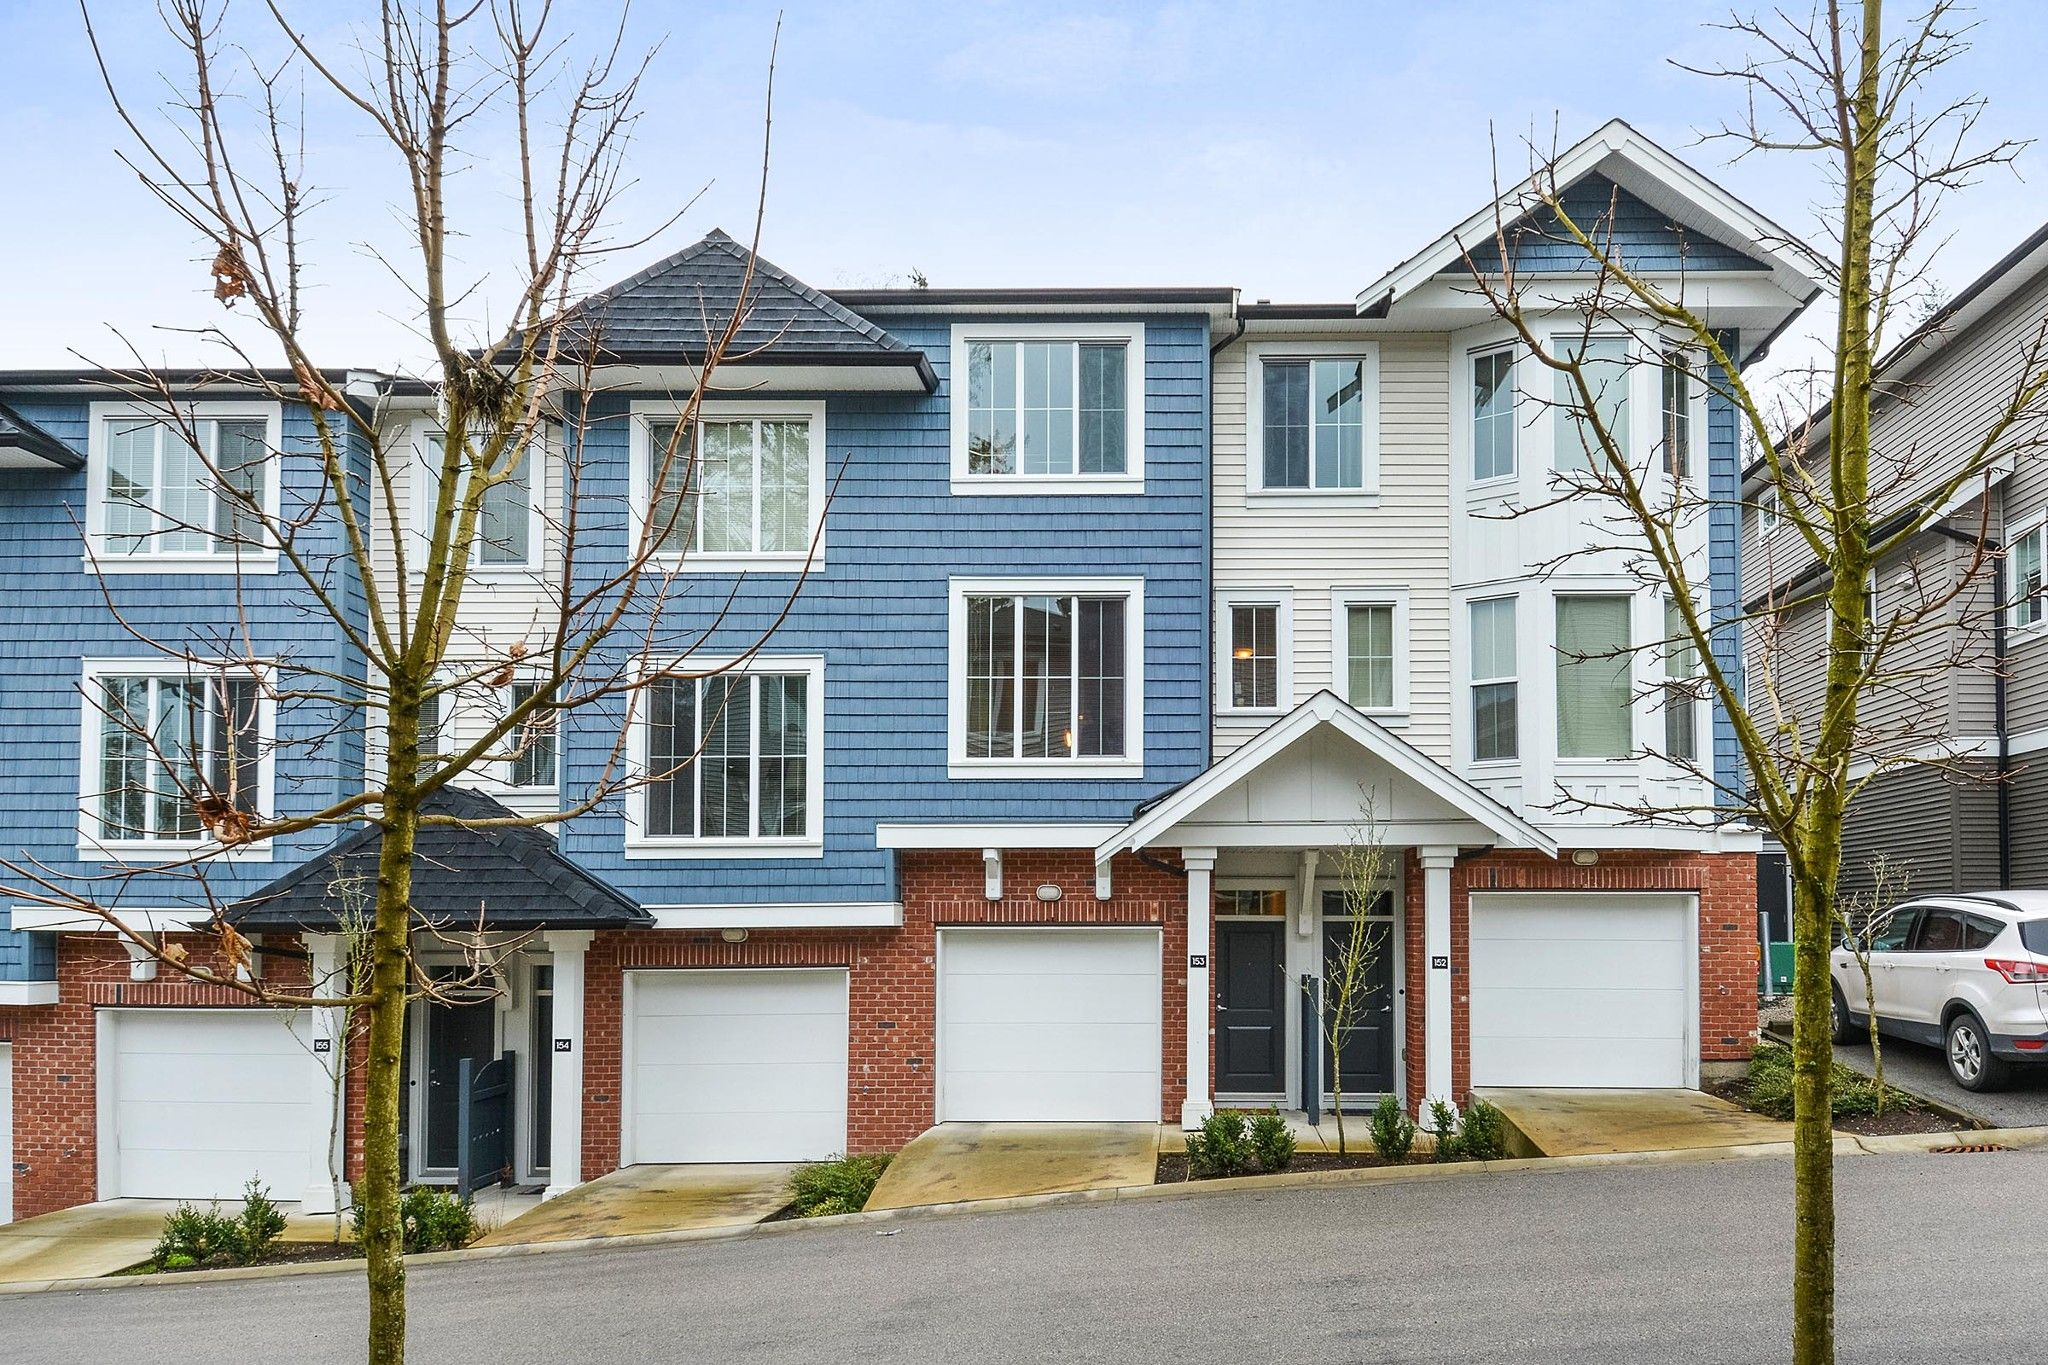 """Main Photo: 153 14833 61 Avenue in Surrey: Sullivan Station Townhouse for sale in """"ASHBURY HILL"""" : MLS®# R2234693"""